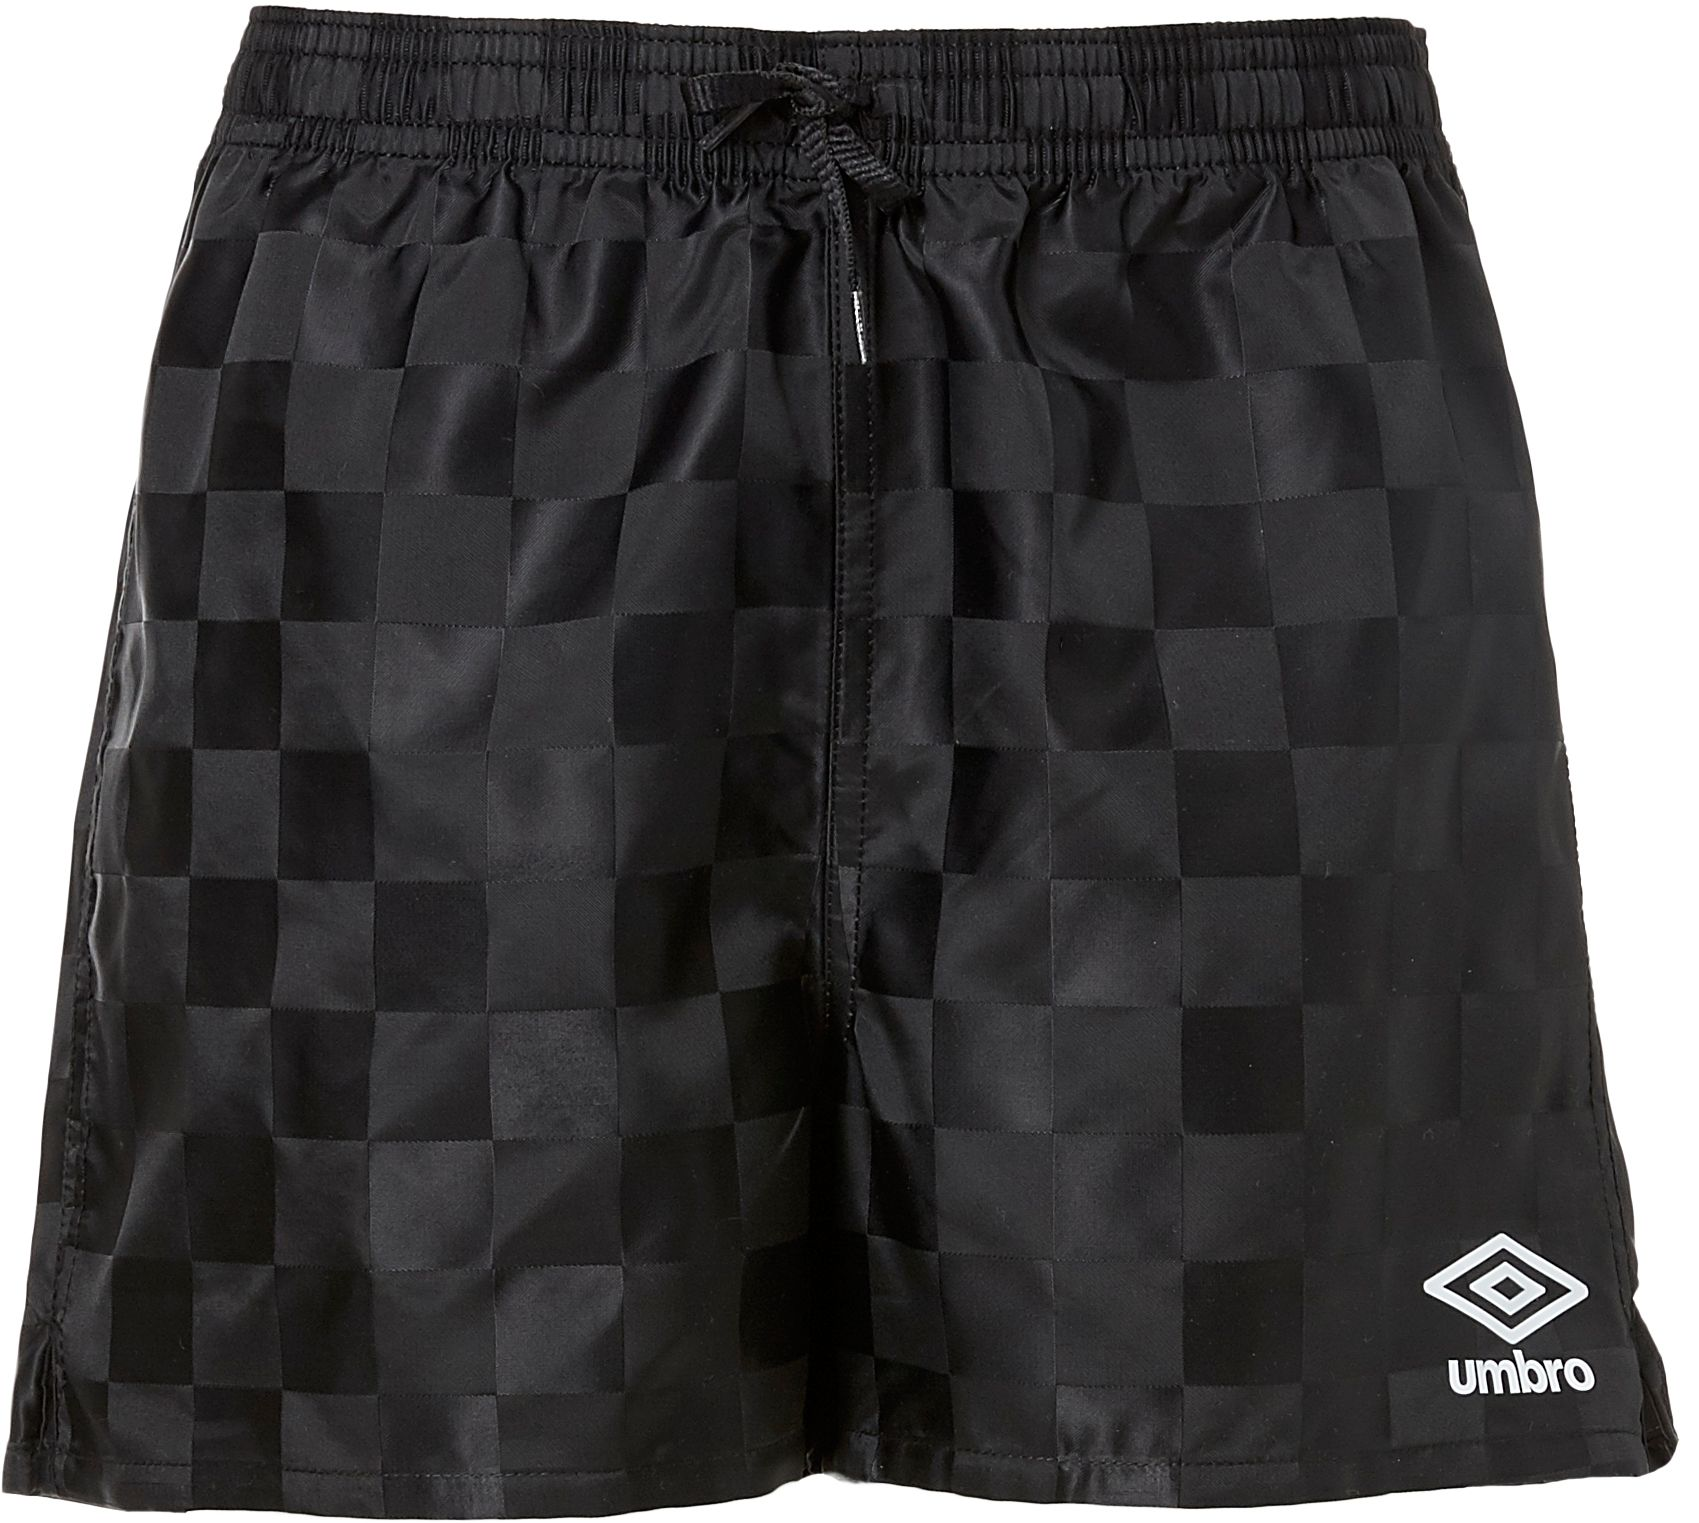 fi_hover_over_image_to_zoom??? umbro girlsu0027 check soccer shorts ... JZEPCBF